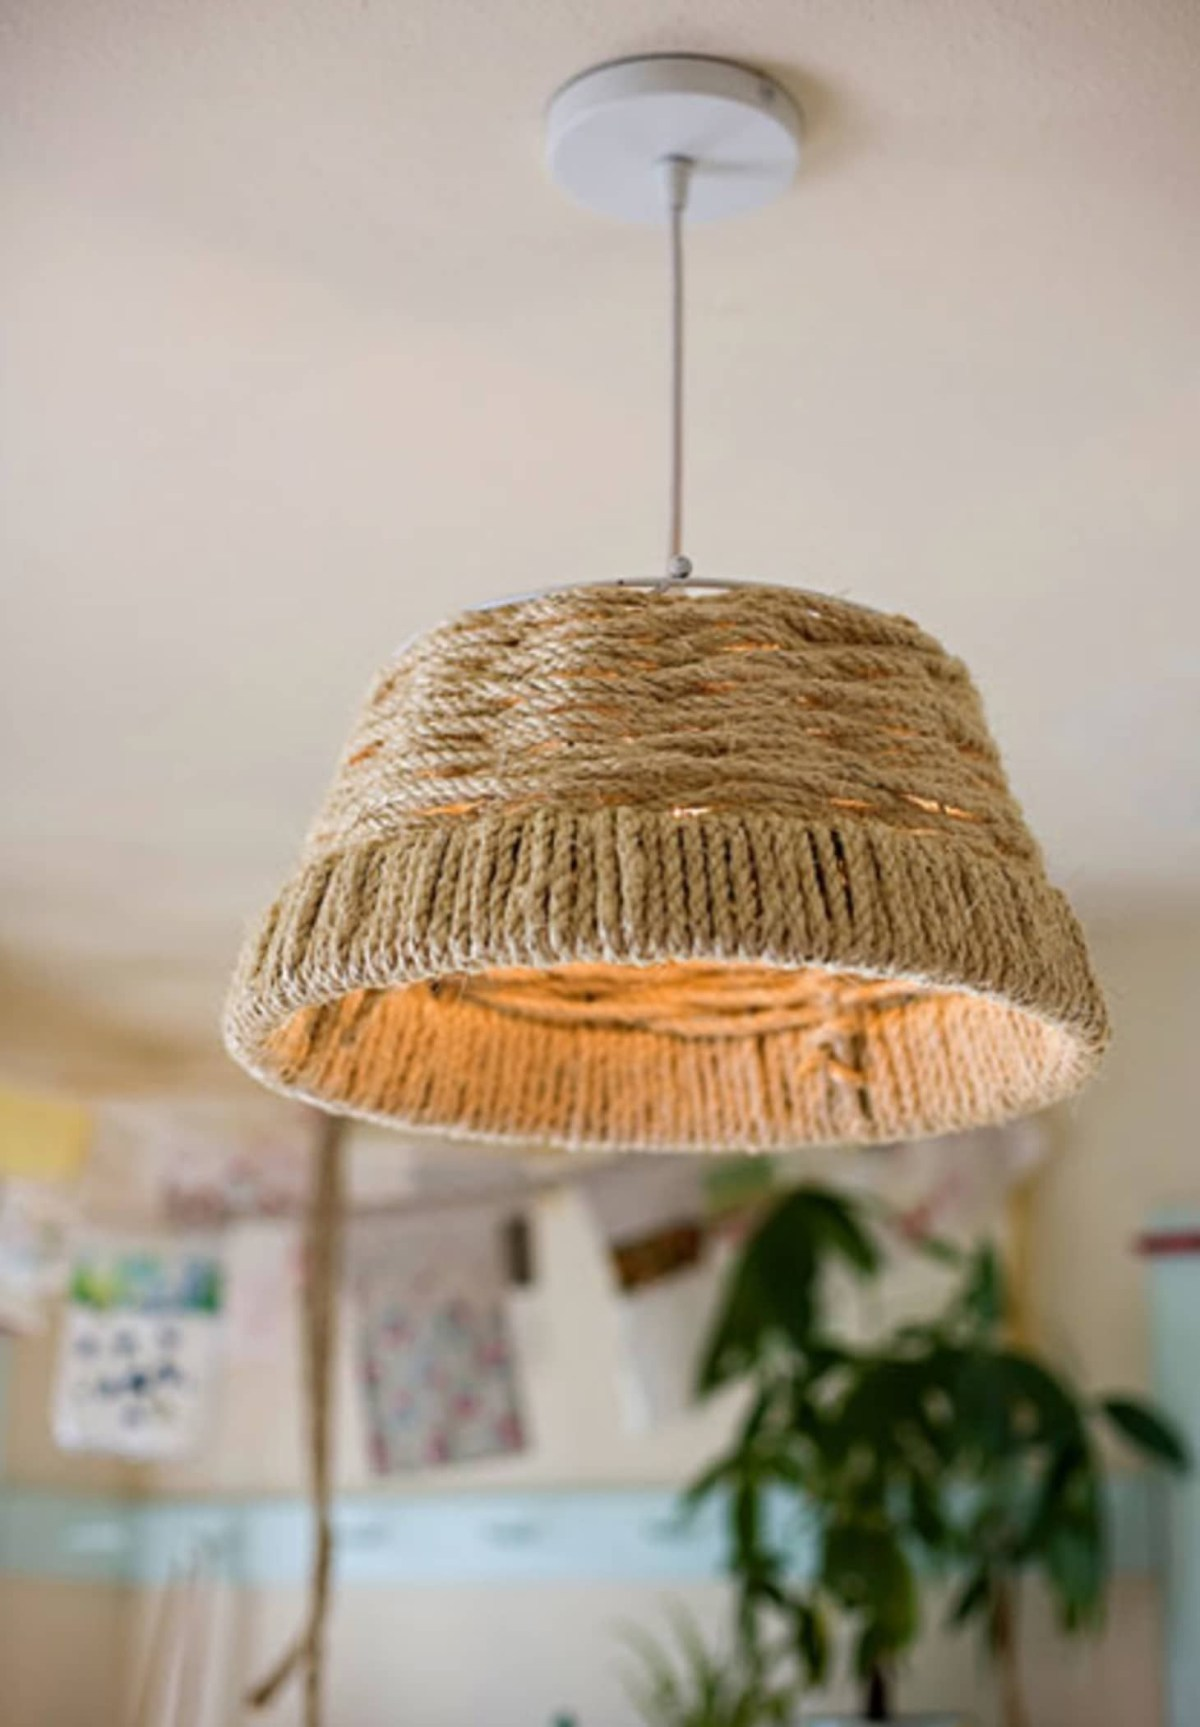 Woven rope pendant light Undoubtedly Gorgeous DIY Pendant Light Fixtures From Upcycle Items